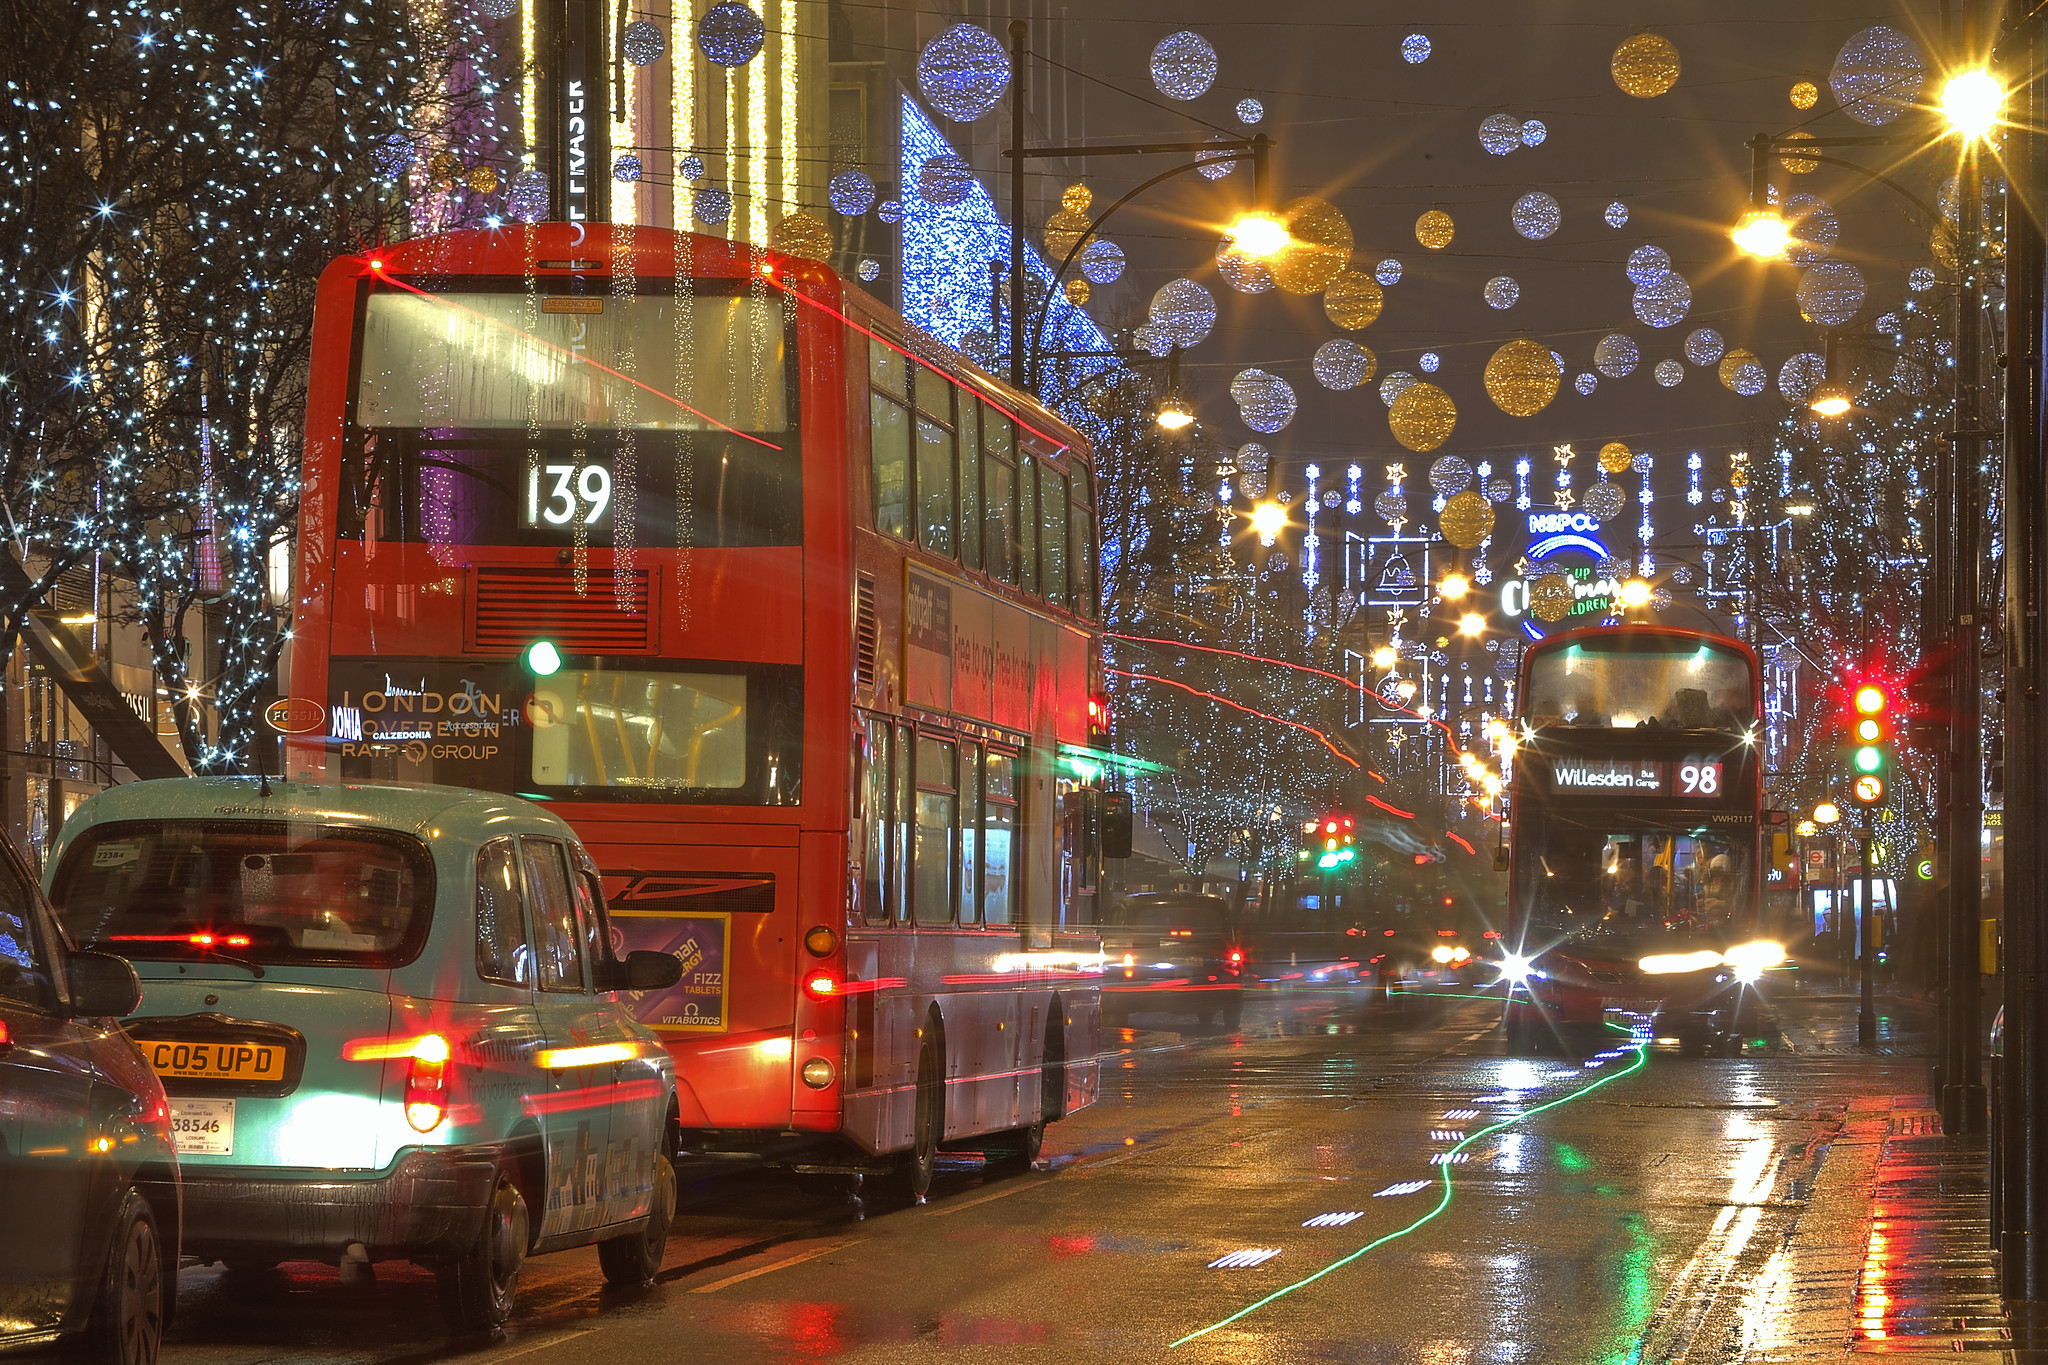 Natale piovoso / Rainy Christmas (Oxford Street, London, United Kingdom)(Buon Natale!!!/Merry Christamas!!!)